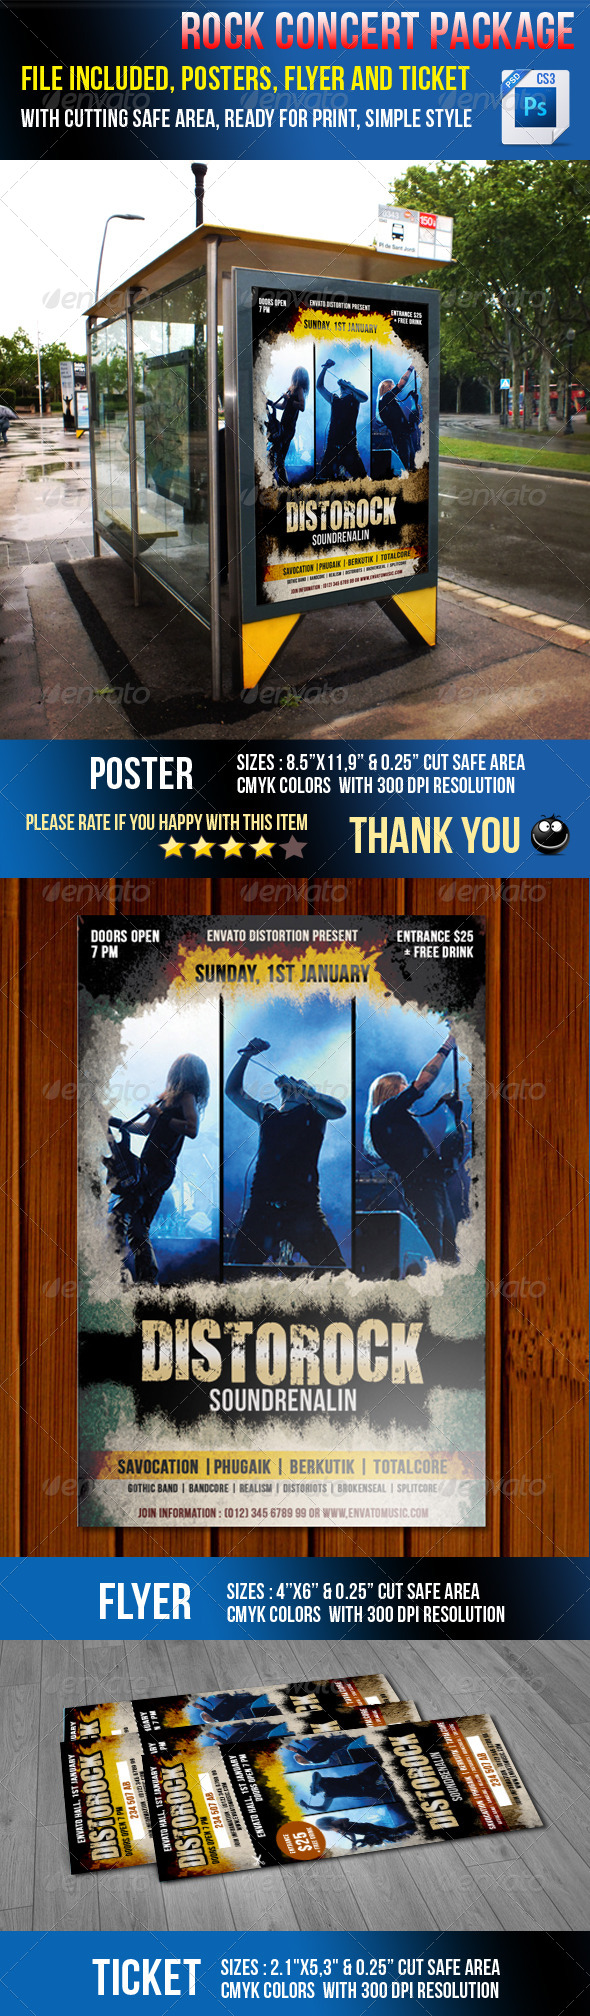 GraphicRiver Rock Concert Package 6854993